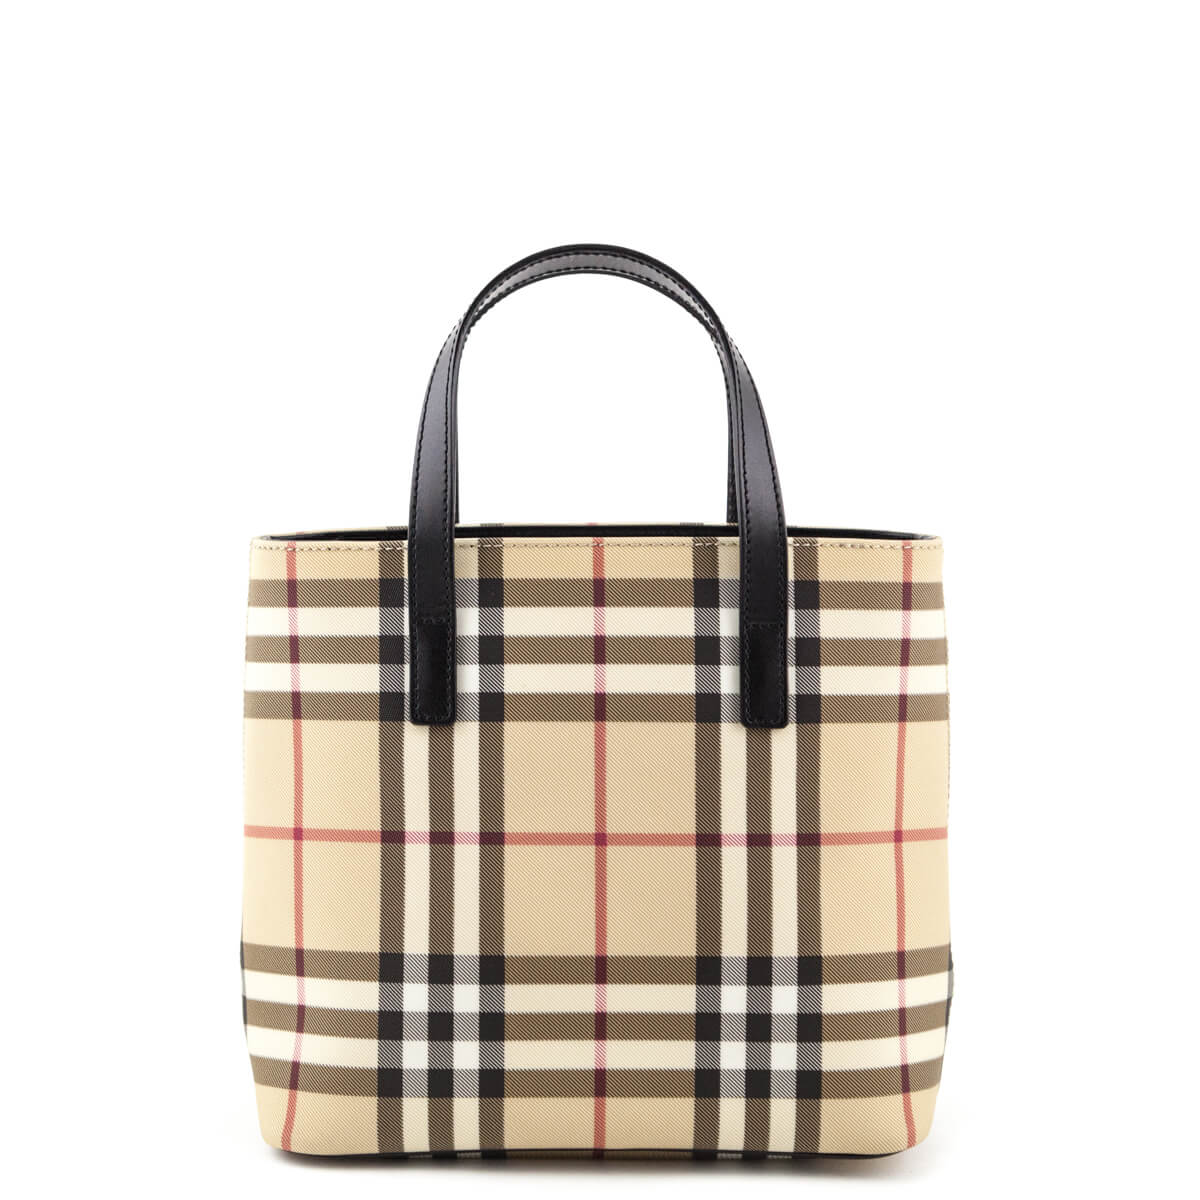 a2b422e22c2e ... Burberry Nova Check Coated Canvas Small Tote Bag - LOVE that BAG -  Preowned Authentic Designer ...